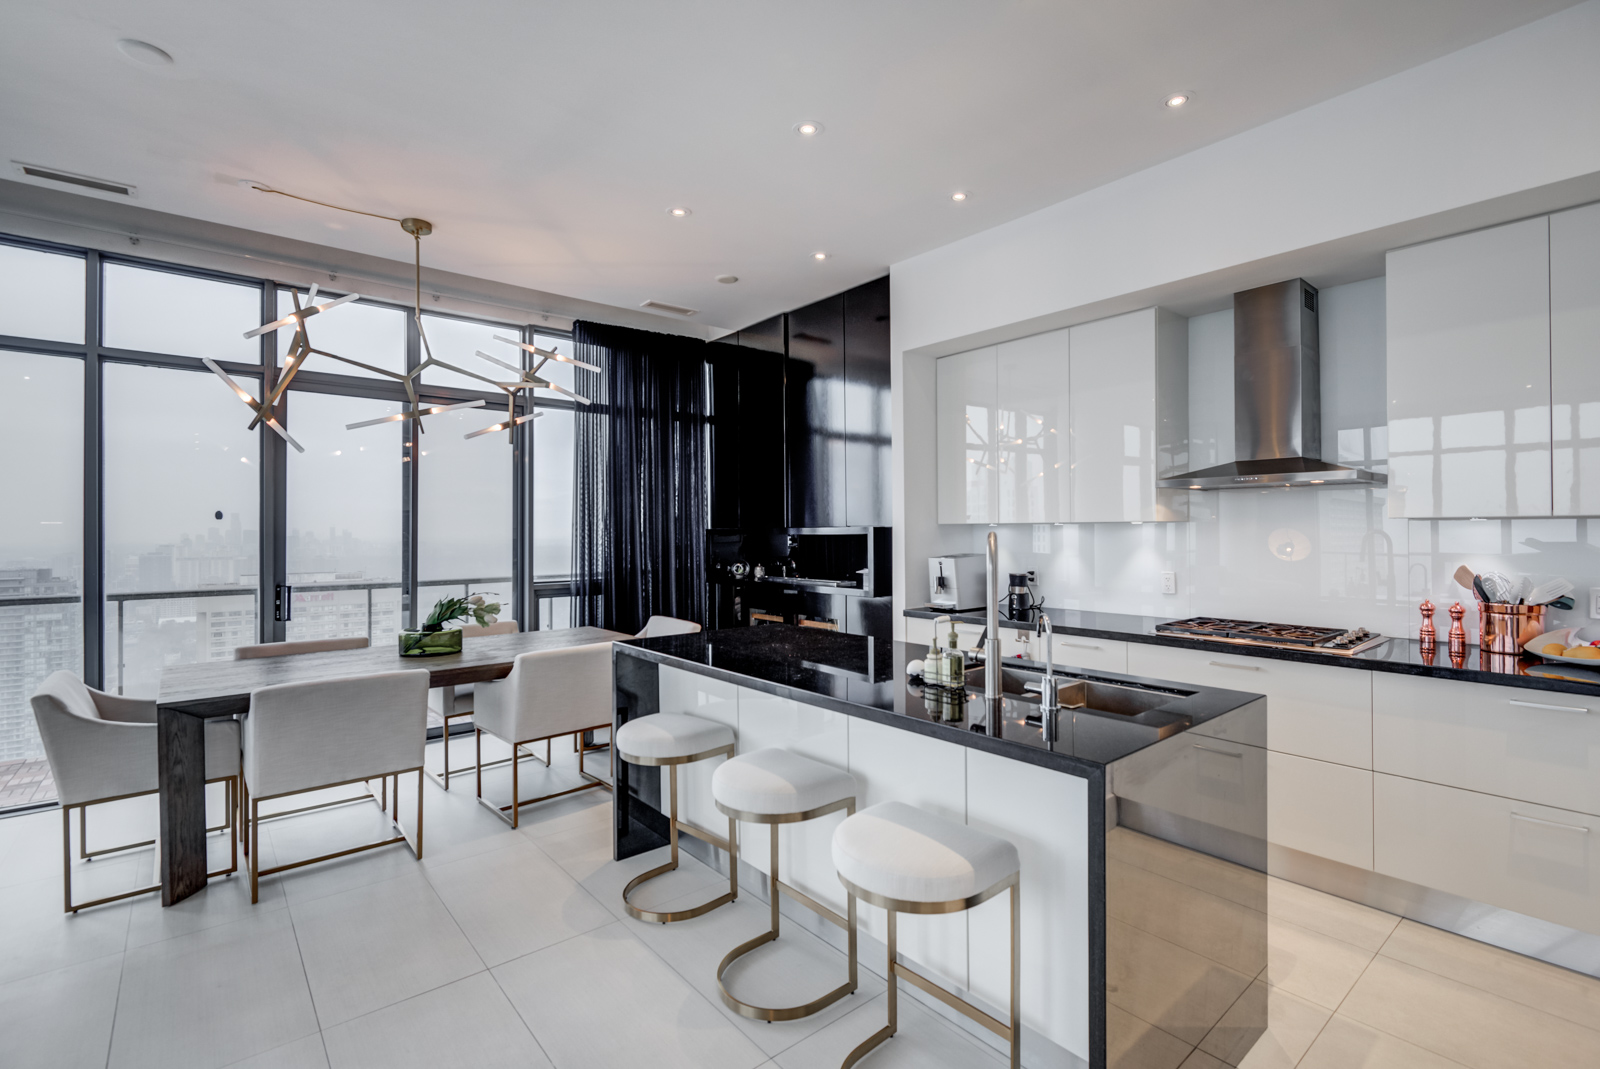 Penthouse kitchen of 33 Charles St E Casa Condos with black counters, breakfast bar and appliances.